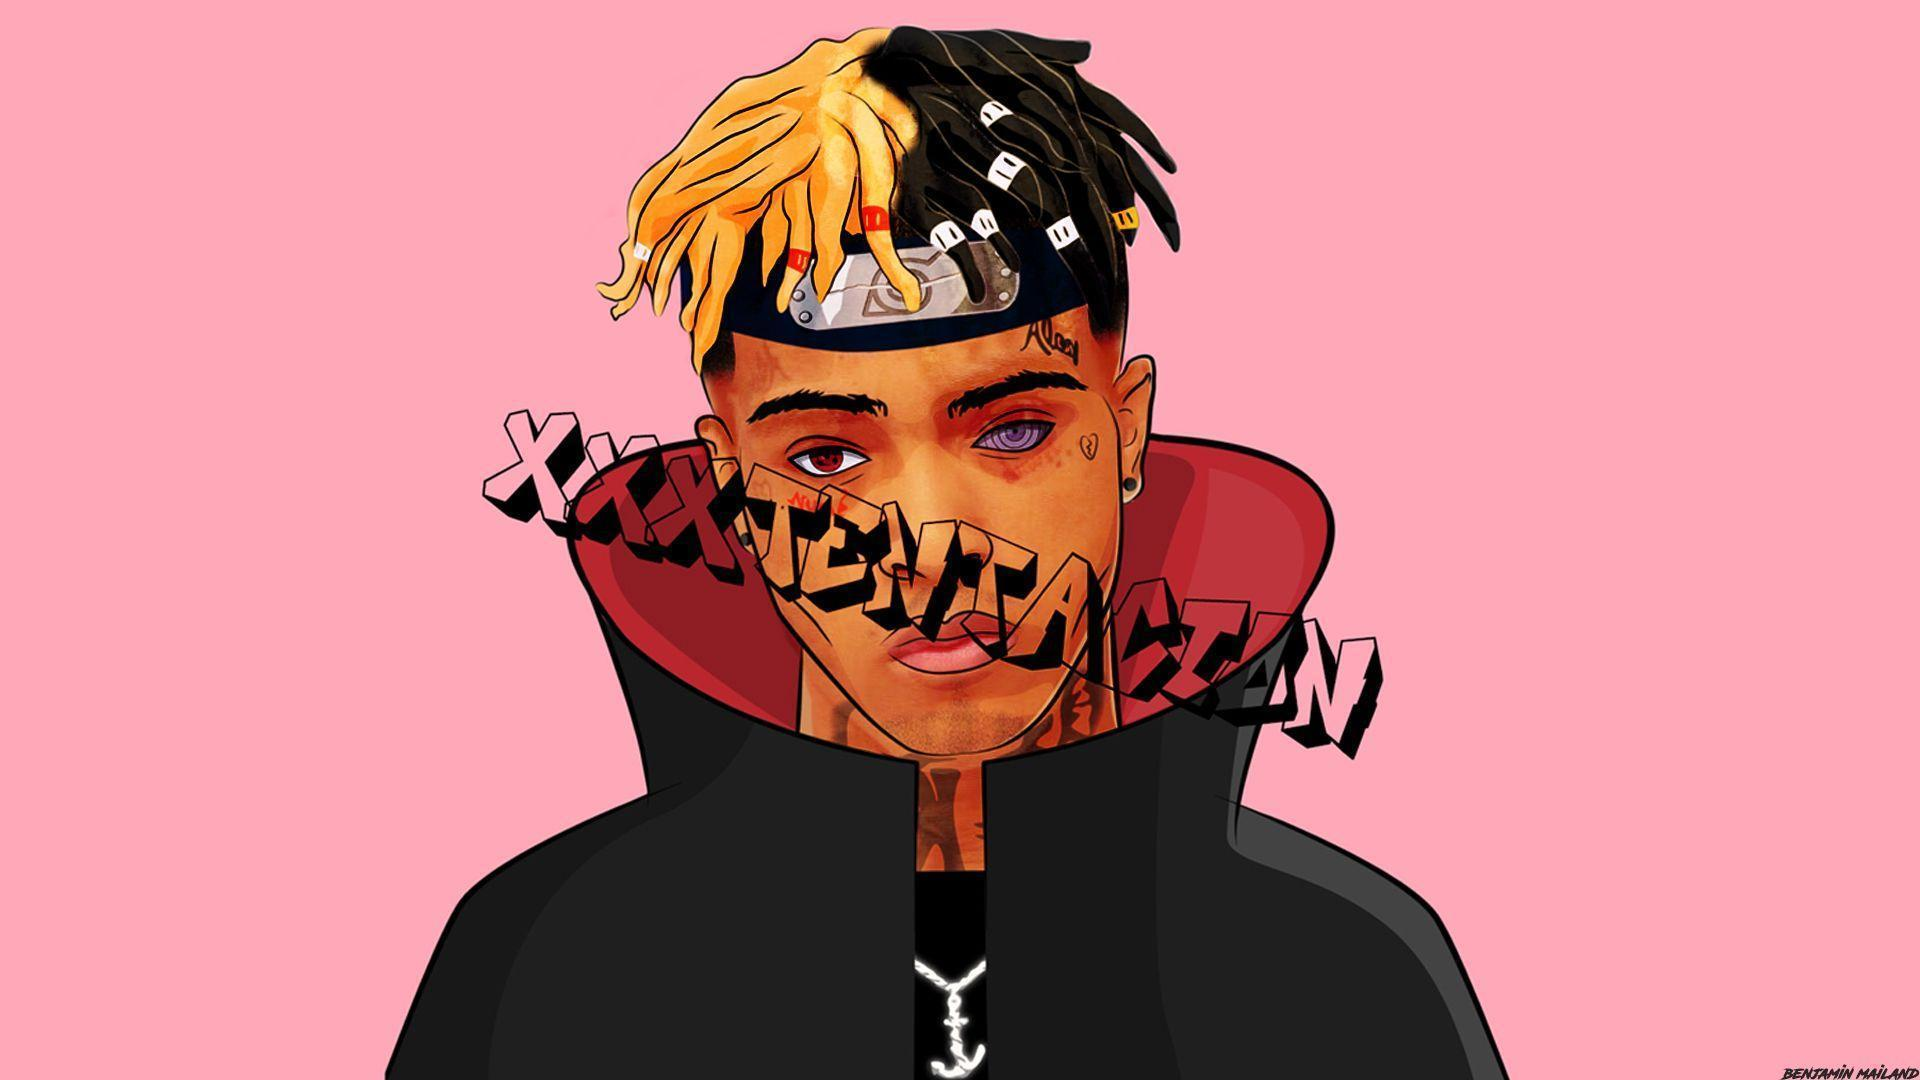 XXXTentacion Wallpapers 1920x1080